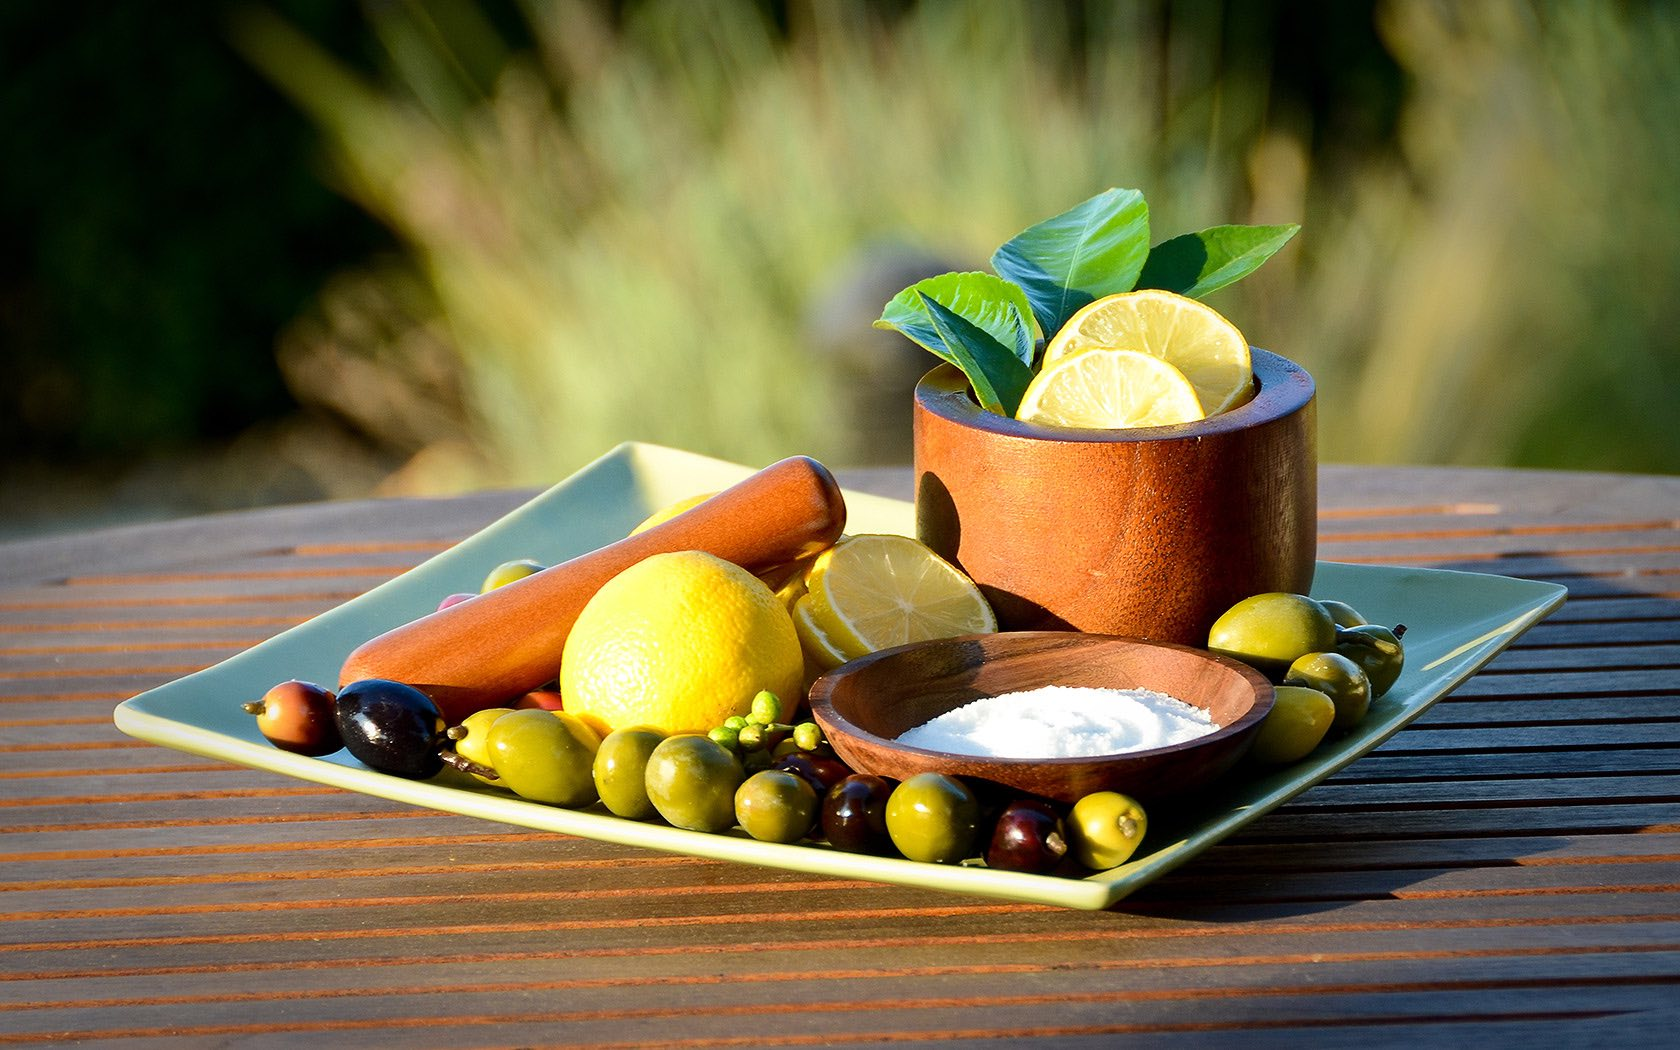 Lemons, lemon slices, olives and wooden bowls arranged on a table